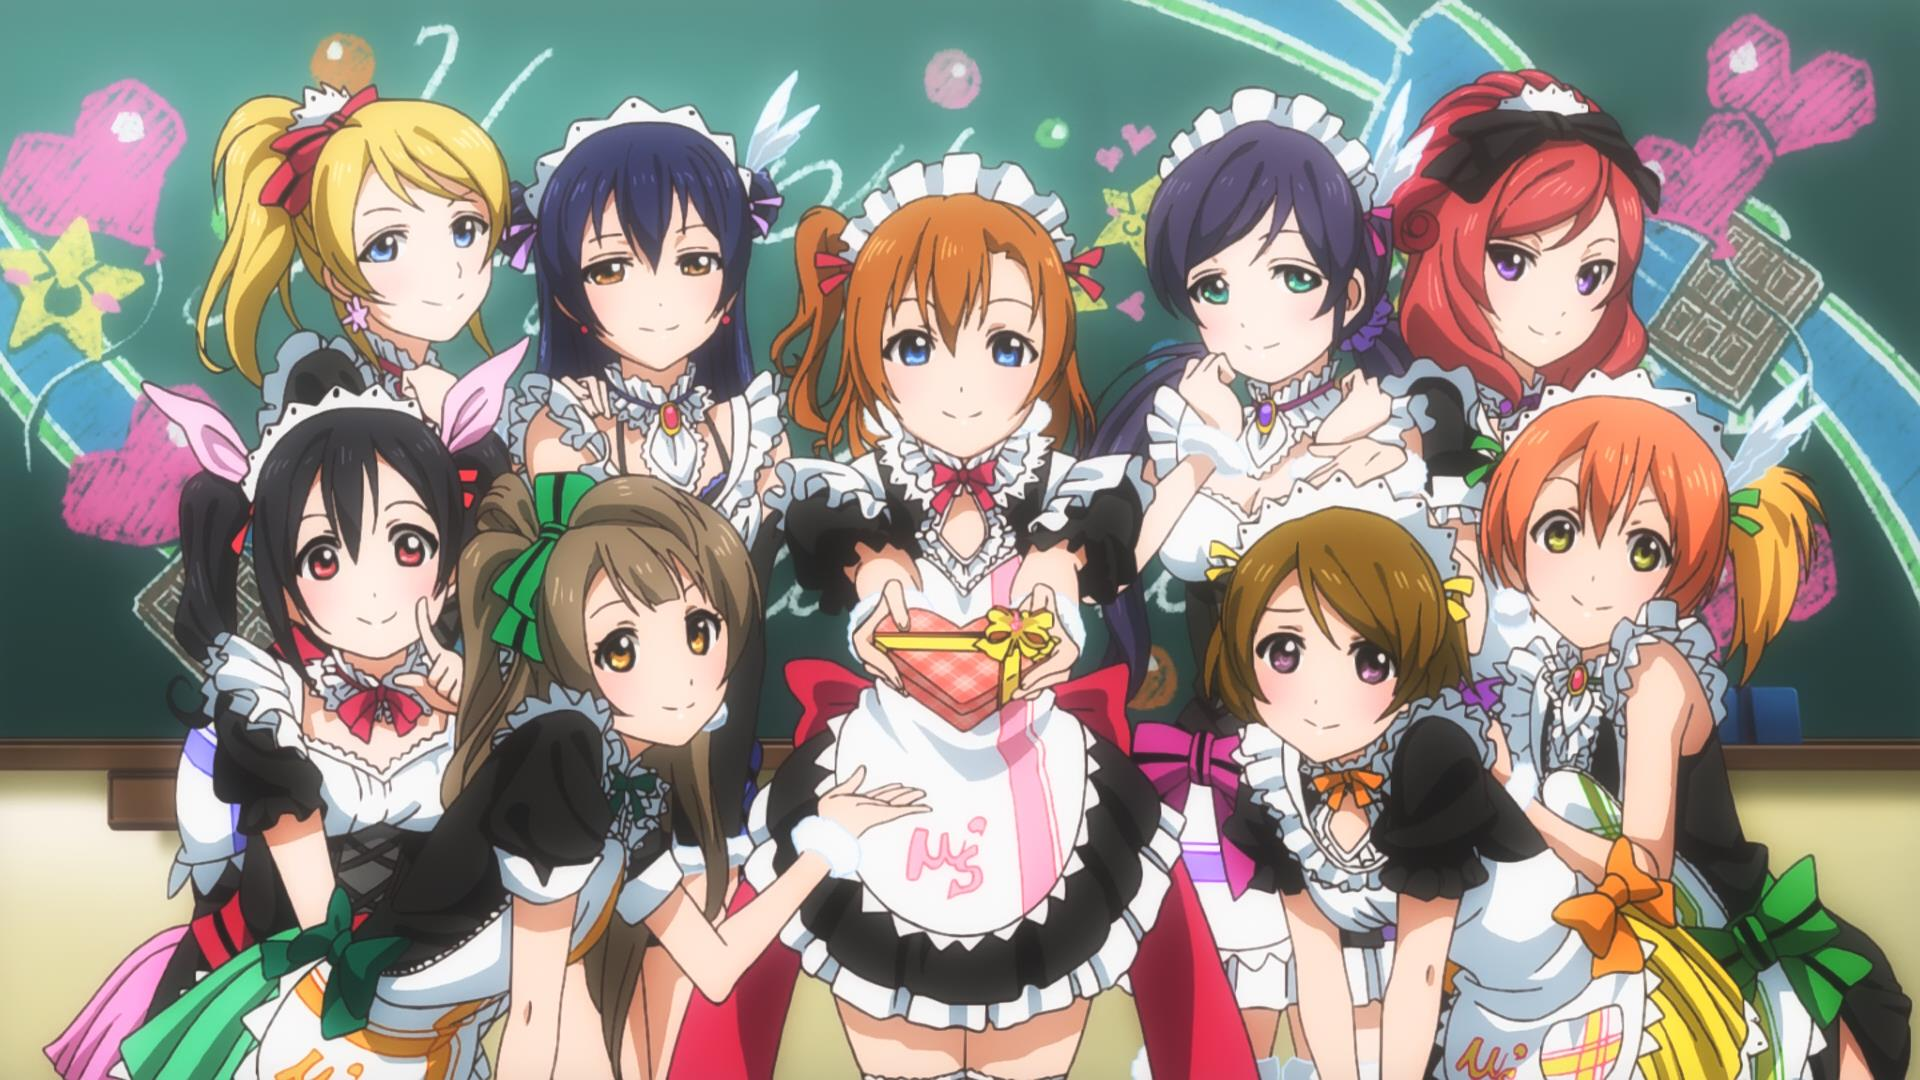 Fredag 11 december: Idol aften, snak om idoler, dans og idol anime (Love Live!, AKB0048)